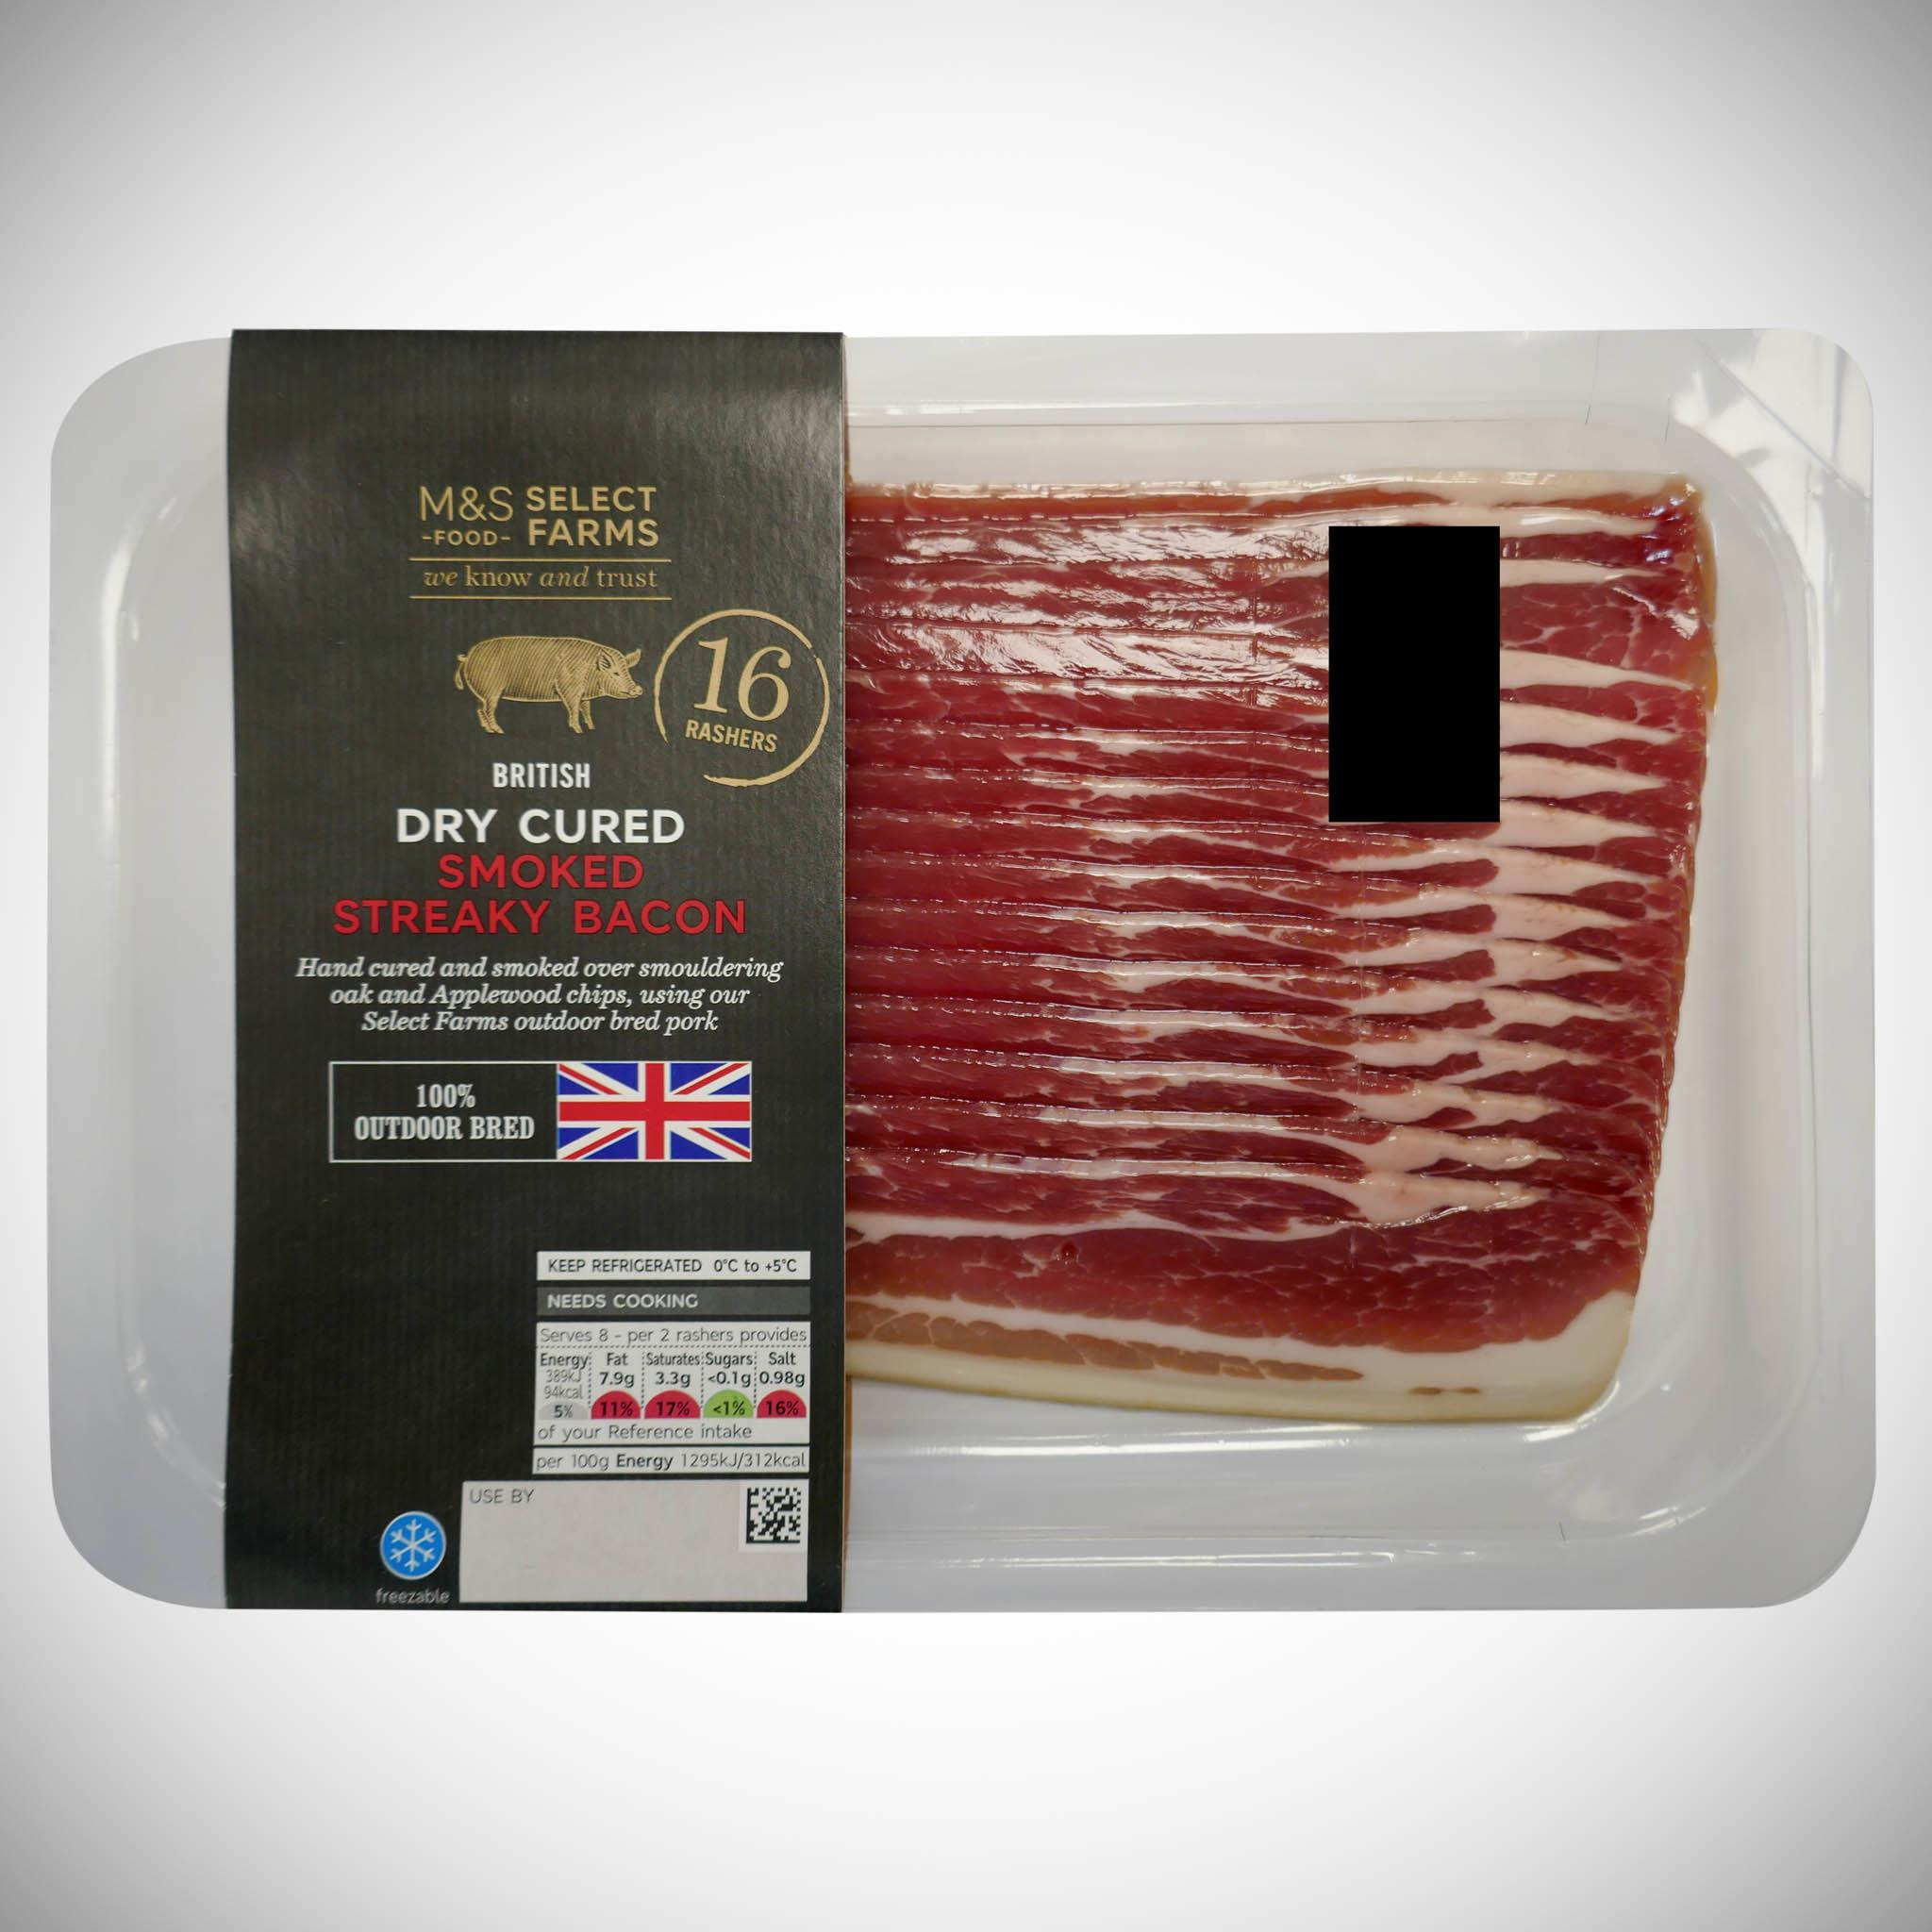 Outdoor Bred Smoked Streaky Bacon 240g